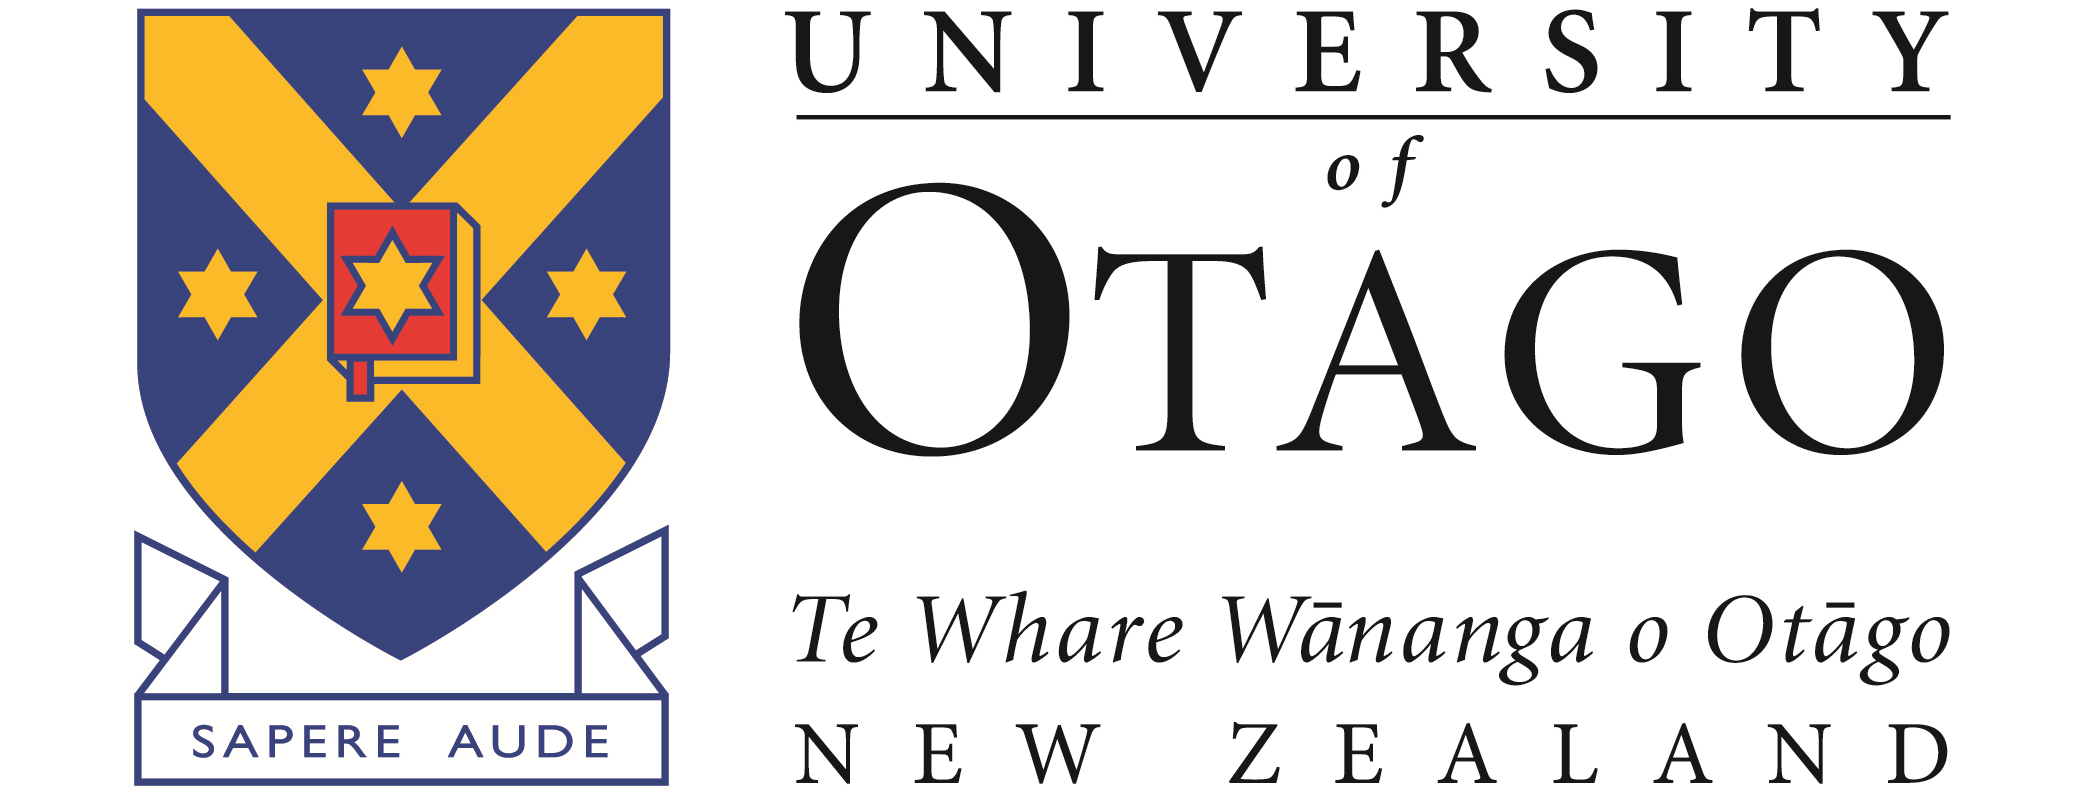 best overseas education consultant in India to study in University of Otago